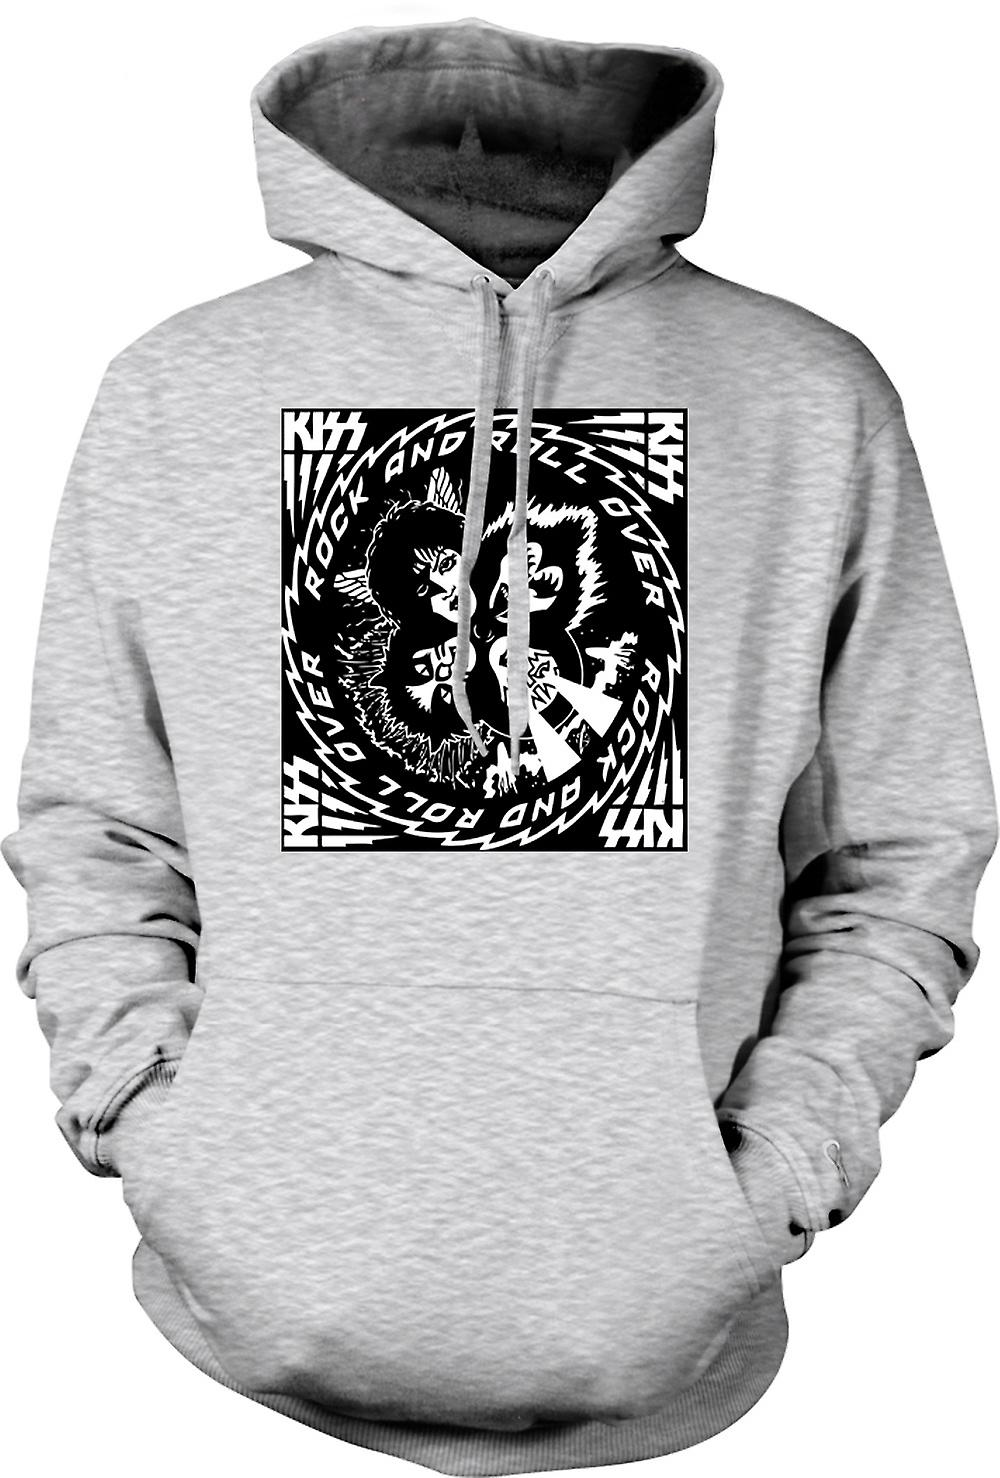 Mens Hoodie - Kiss - Rock And Roll - Over Music